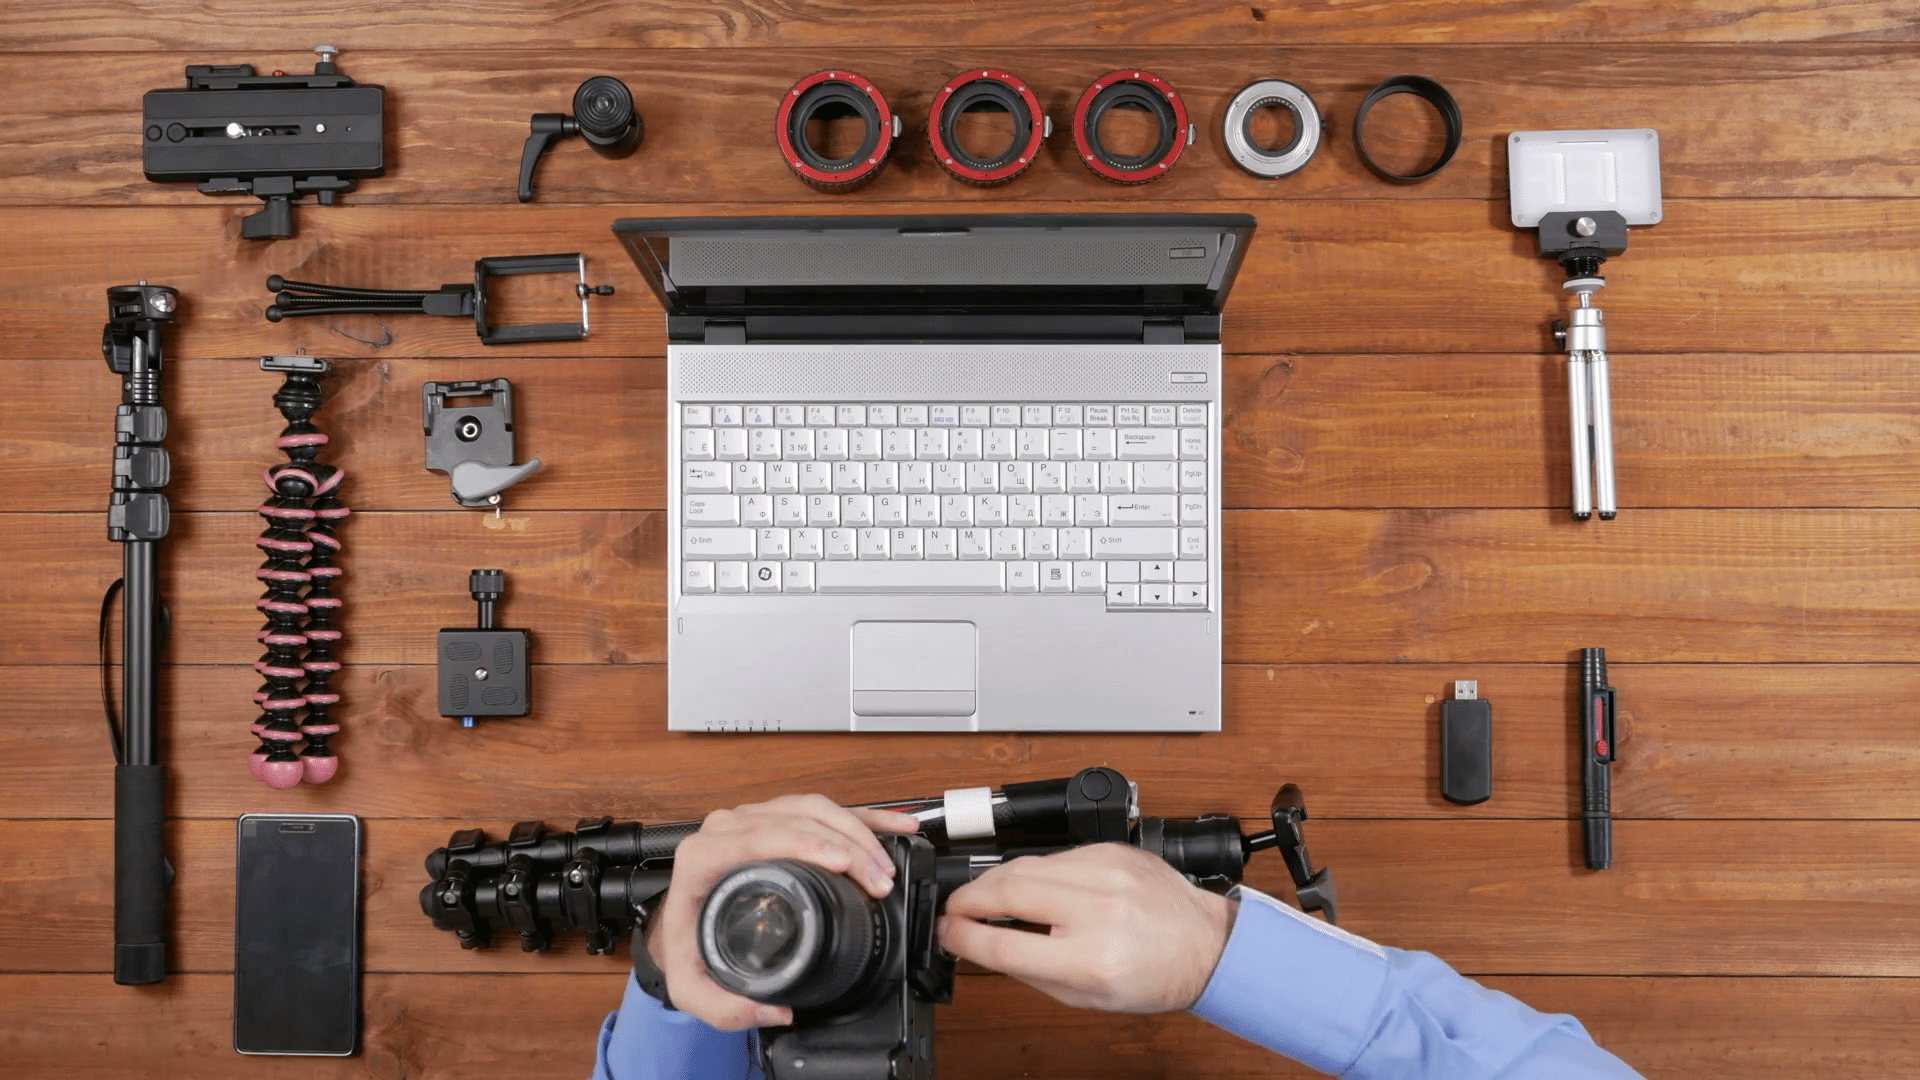 What to ask a photographer before commissioning work